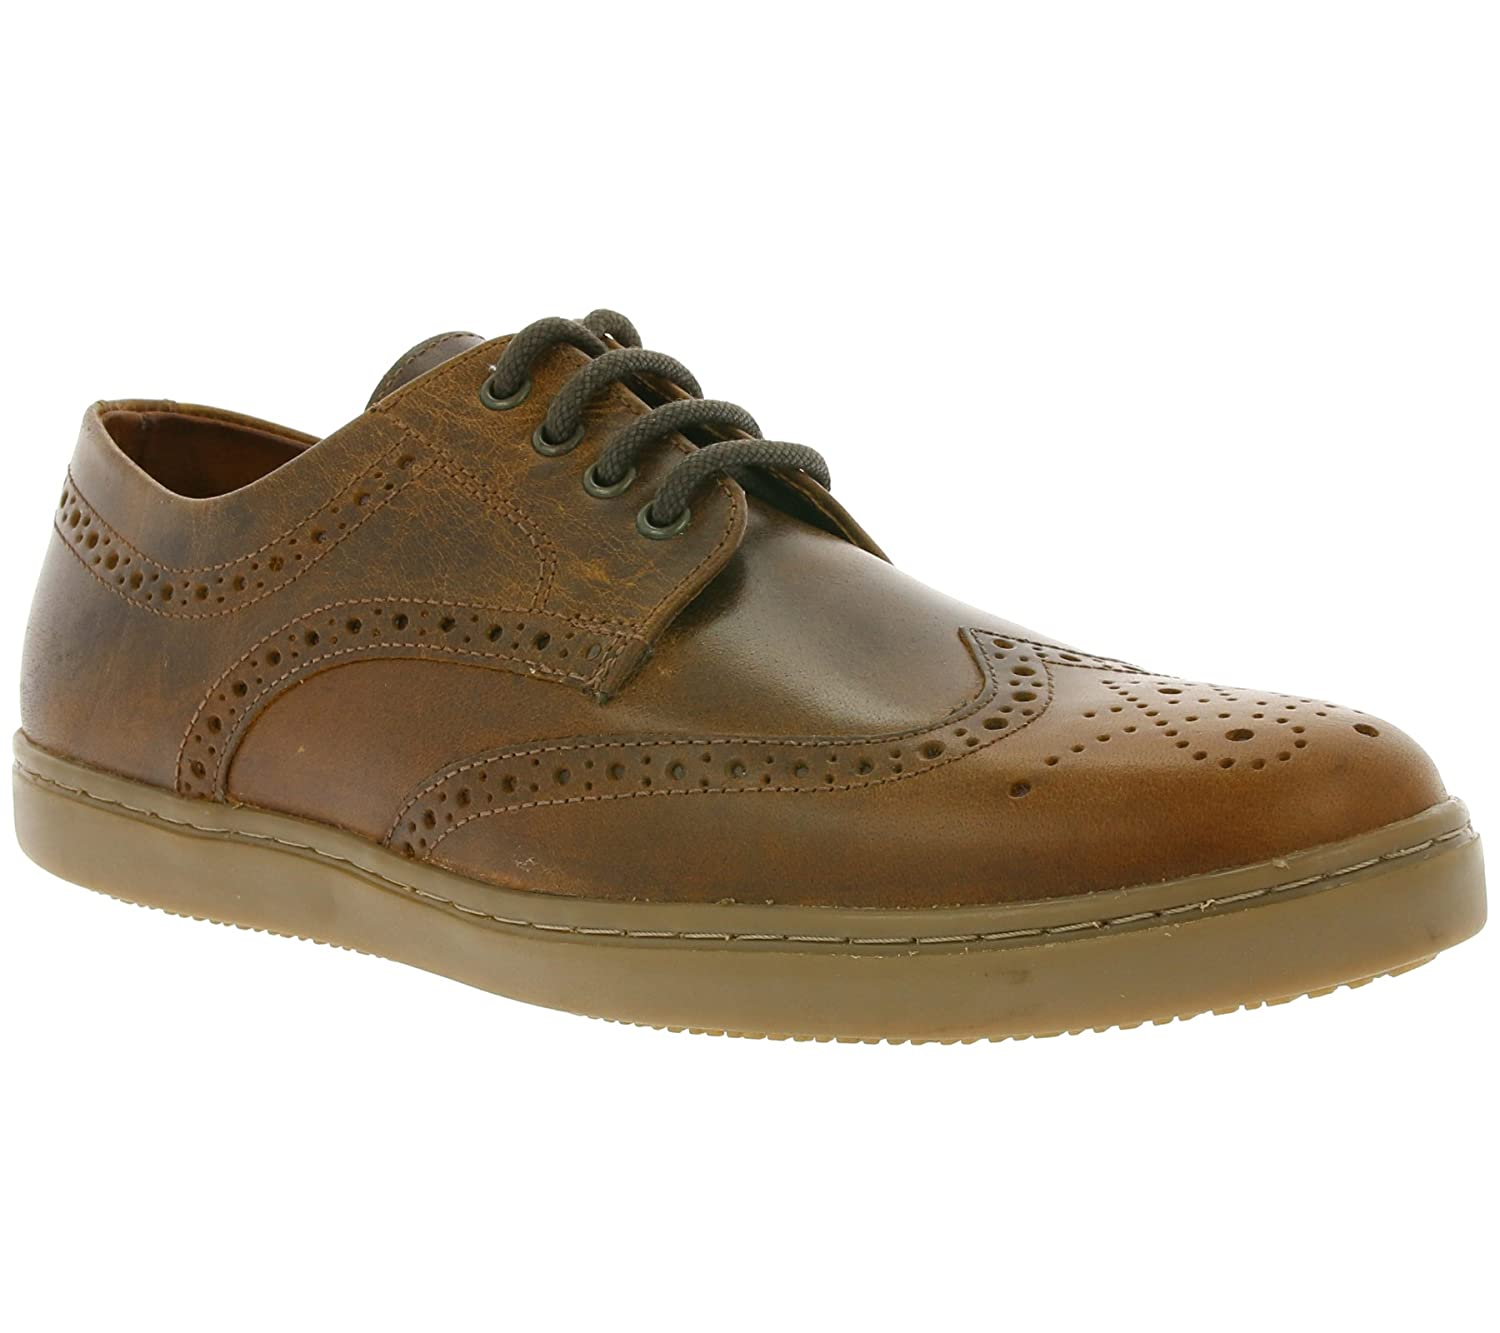 95b76c381960 Red Tape Girvan Men s Genuine Leather Lace-up Shoes Brown M18600 05 ...